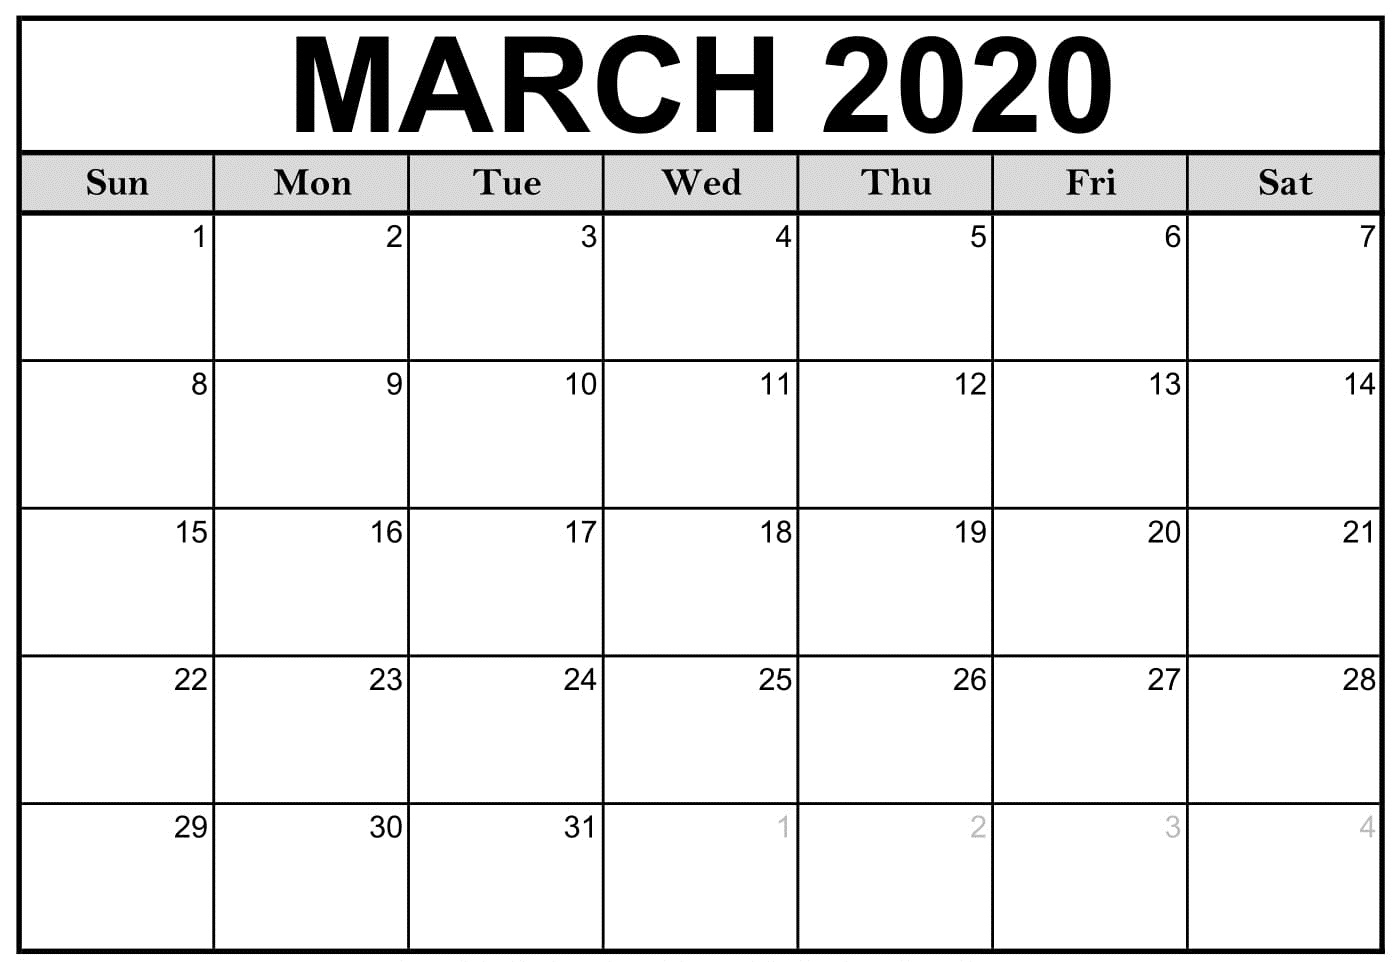 March 2020 Calendar With Notes